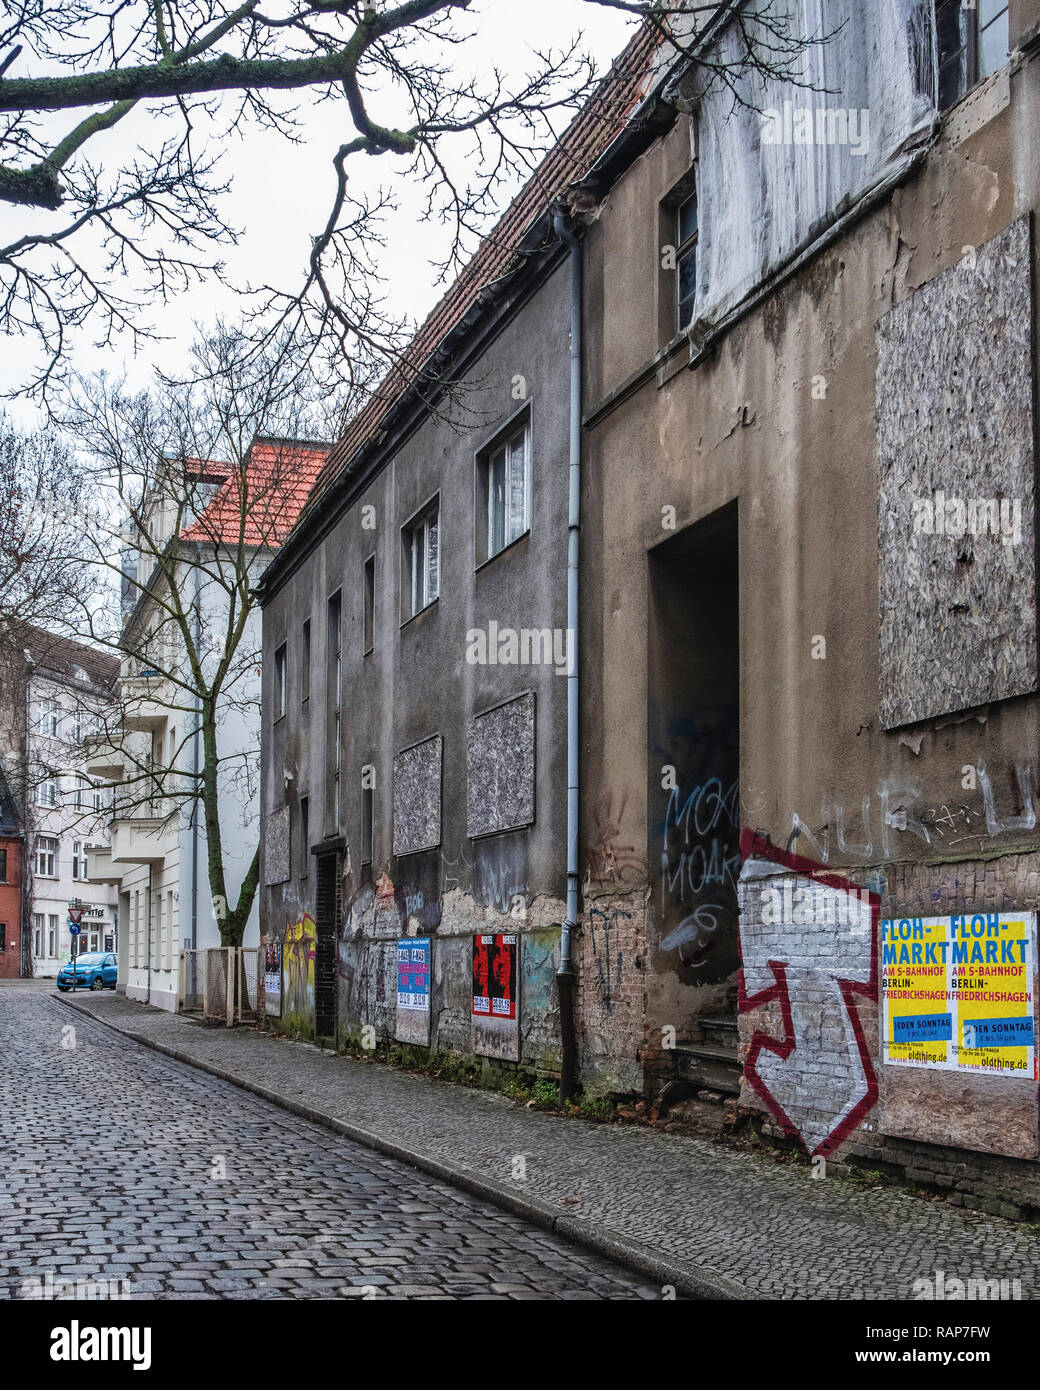 Berlin, Alt-Kopenick. Old decrepit buildings awaiting renovation. Boarded up, graffiti covered and decaying - Stock Image